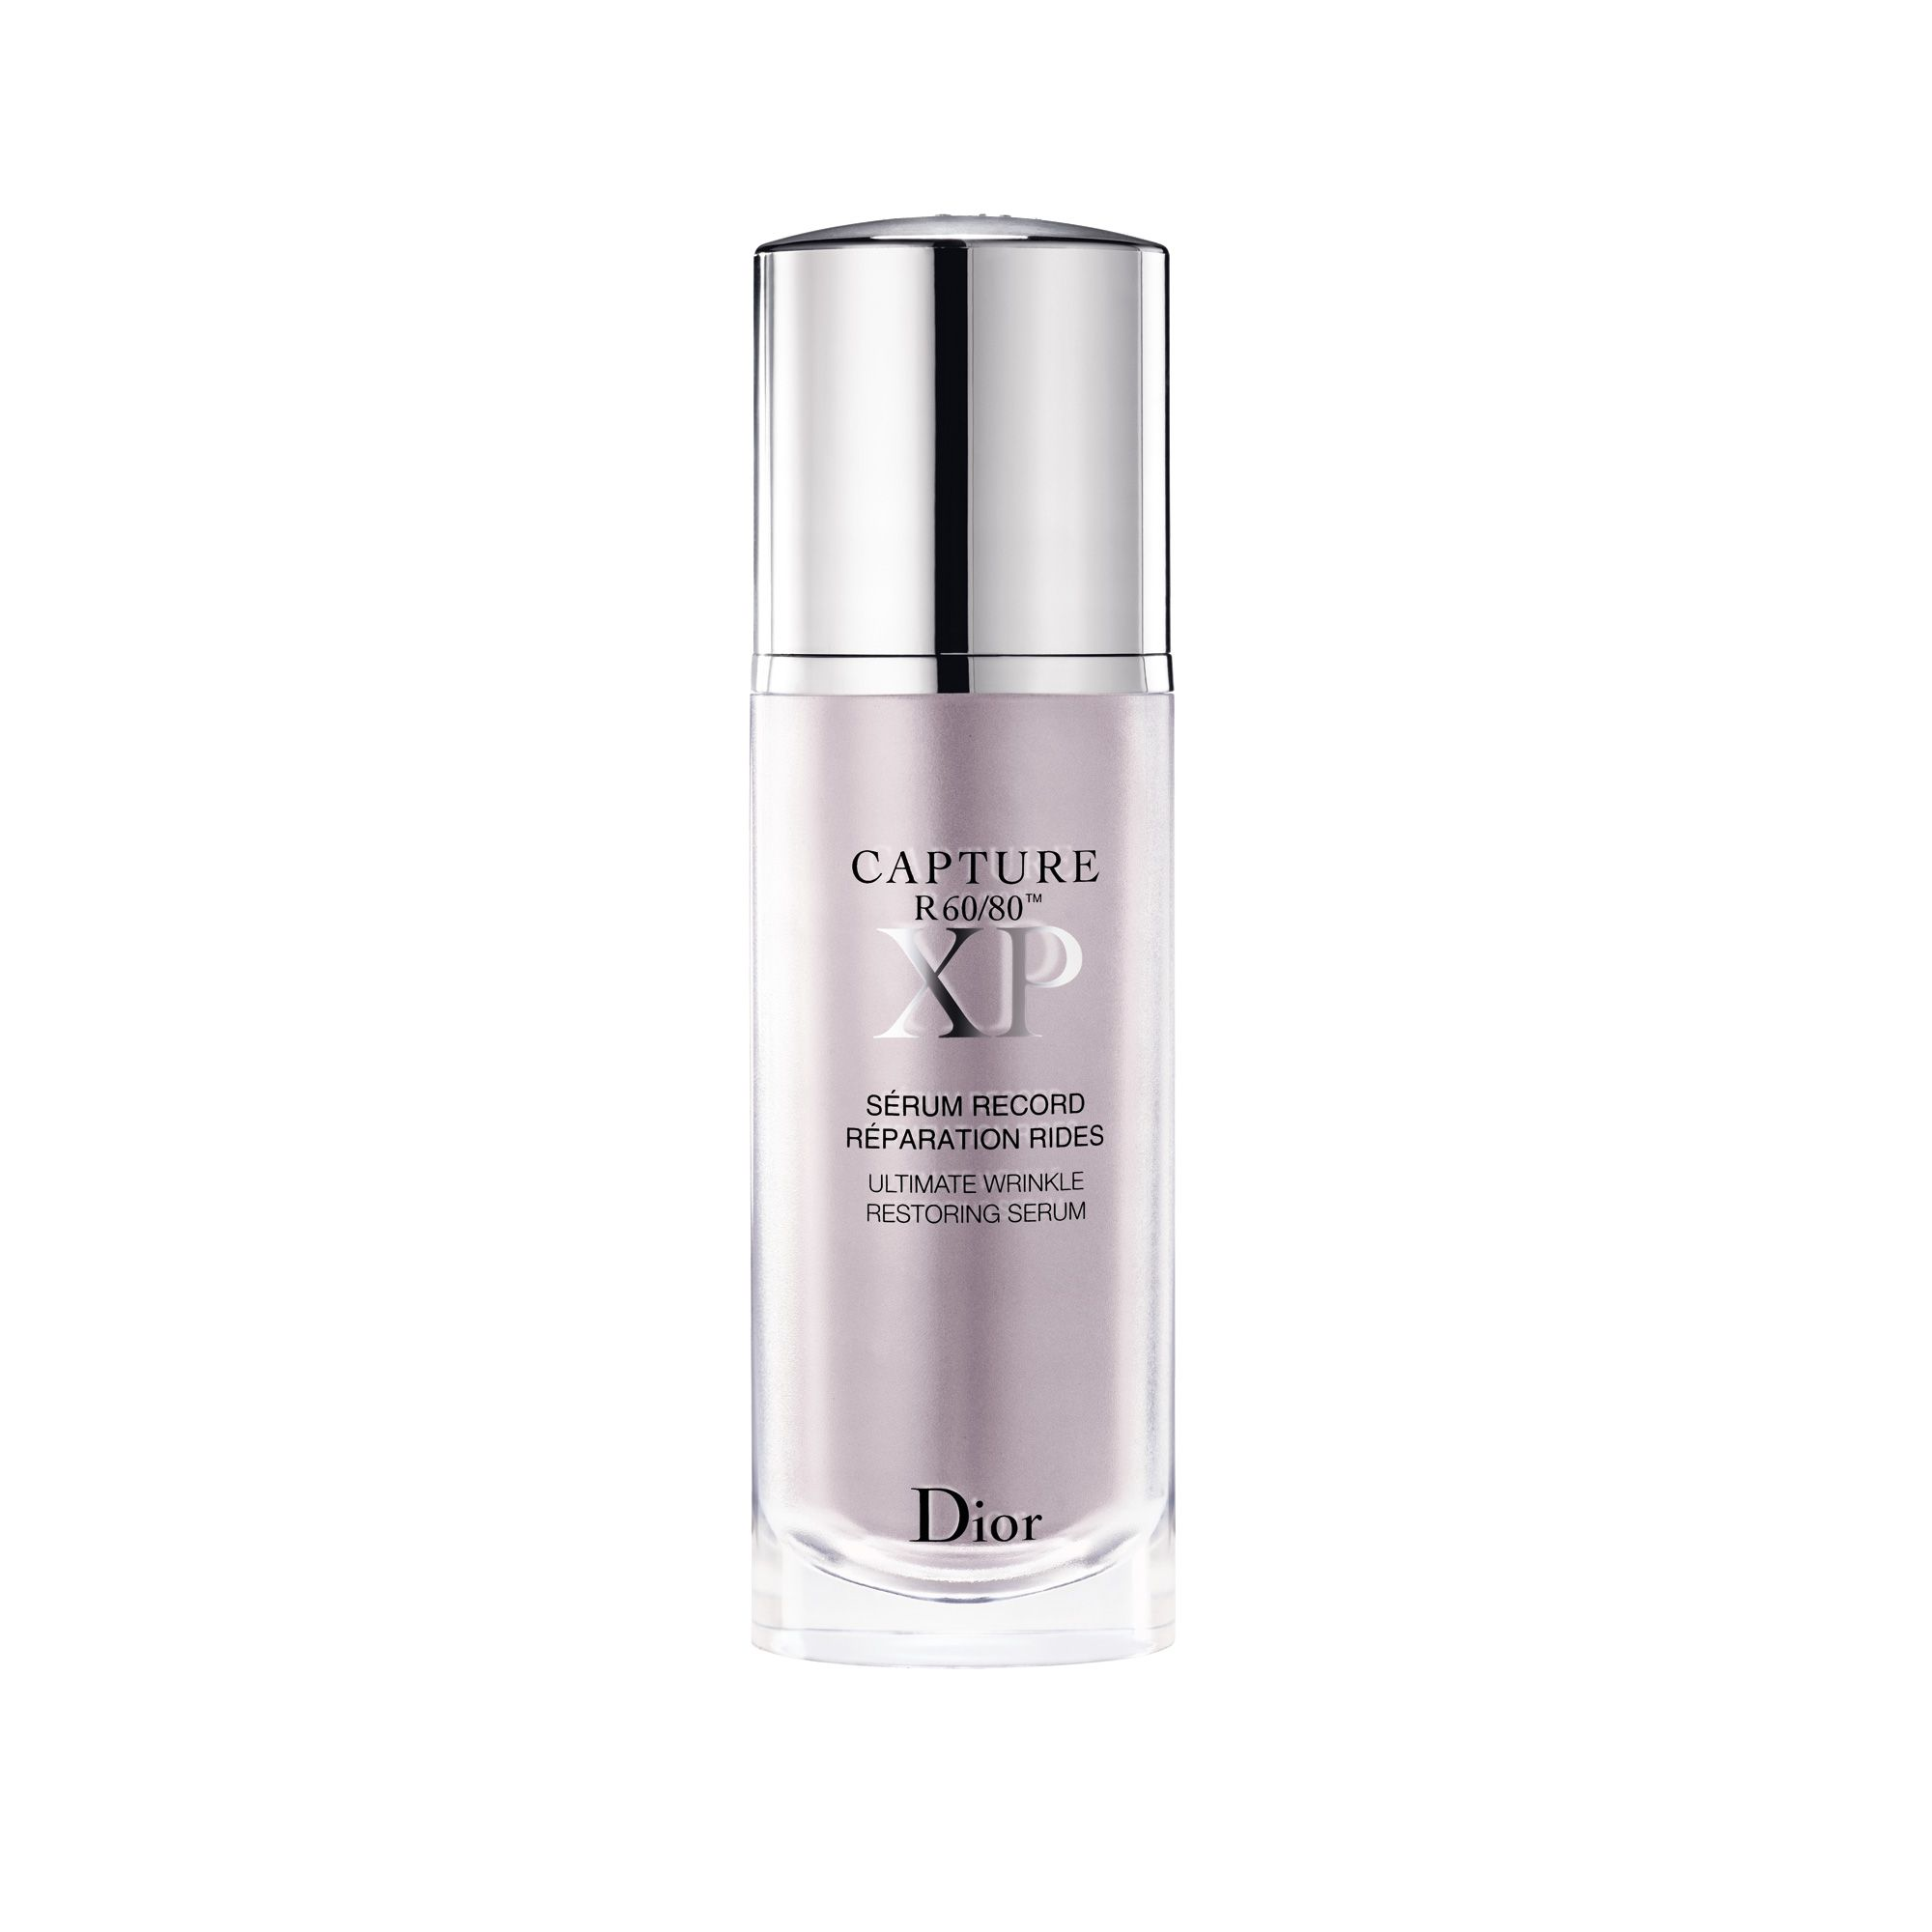 dior capture r60 80 xp serum 30ml review compare prices buy online. Black Bedroom Furniture Sets. Home Design Ideas